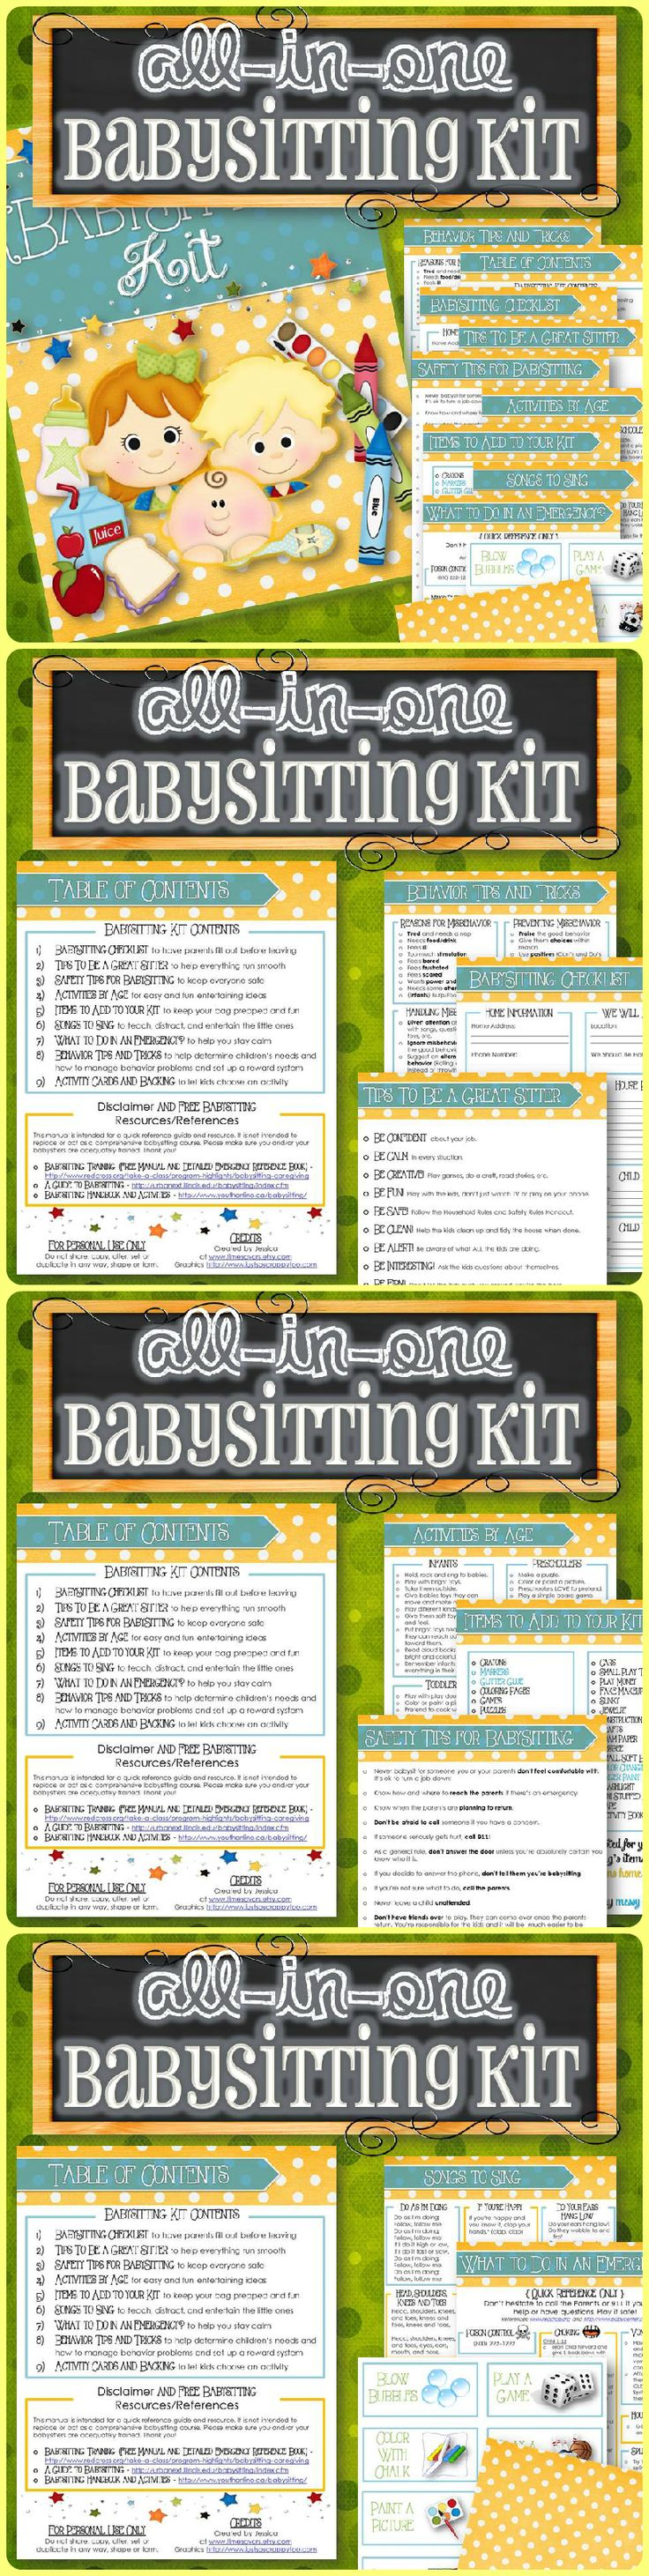 ideas about babysitting bag babysitting baby have girls create items for babysitting kit don t actually use this just a reminder of an activity